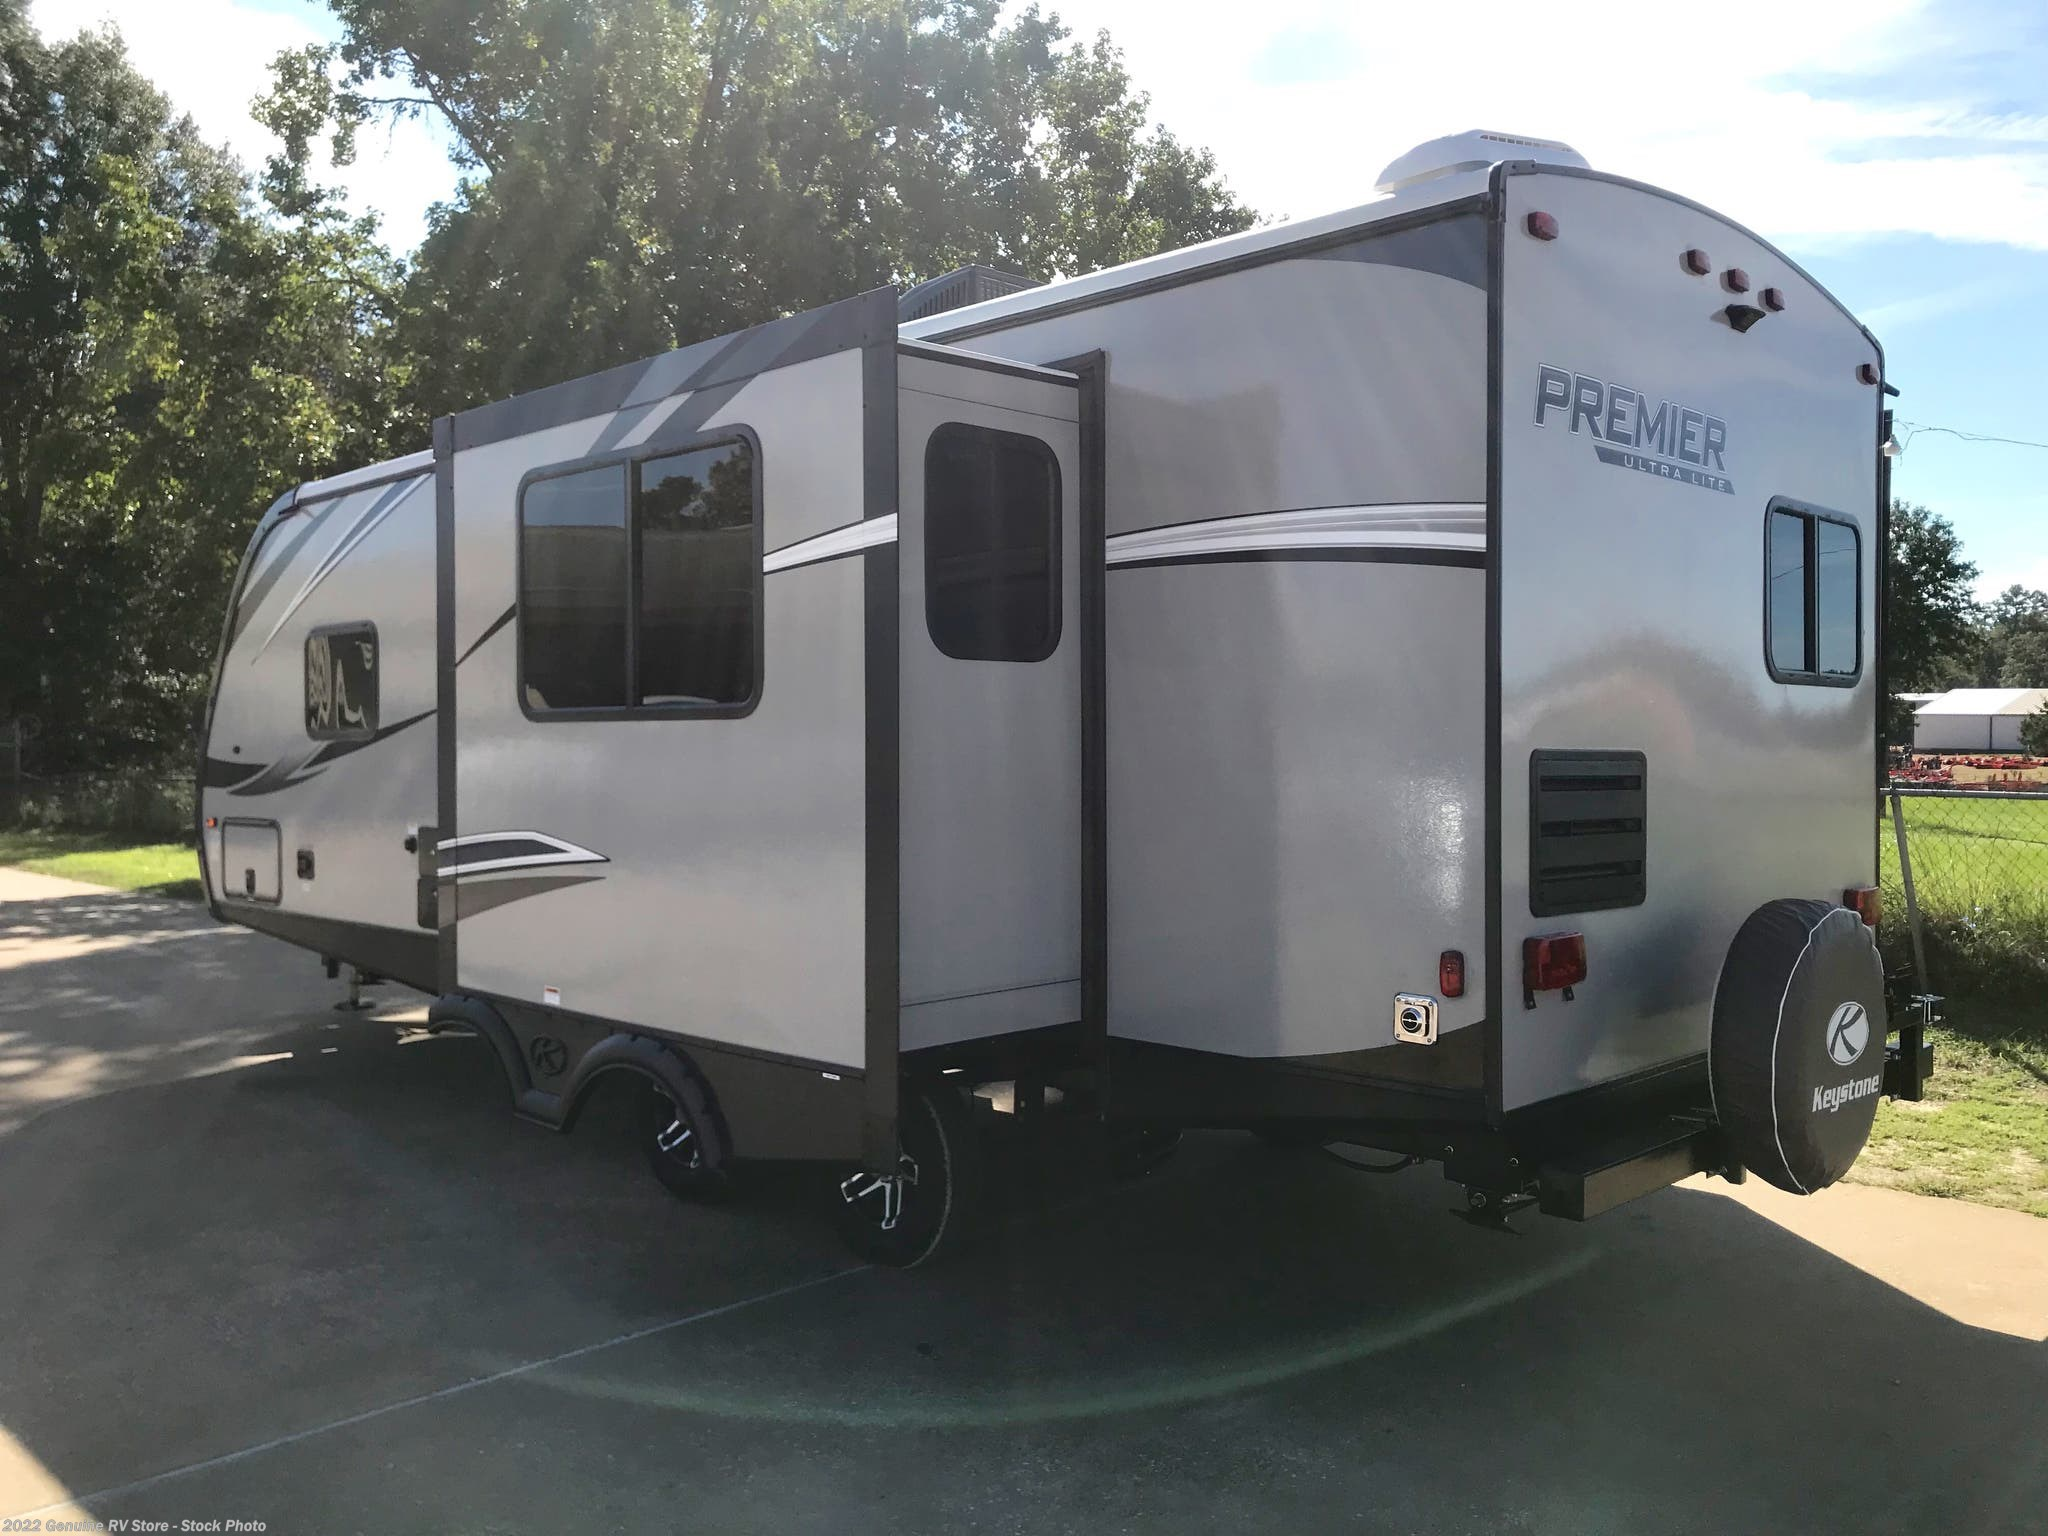 2019 Keystone Rv Bullet Premier 24rk Ultra Lite For Sale In Cable Tv Wiring Diagram Previous